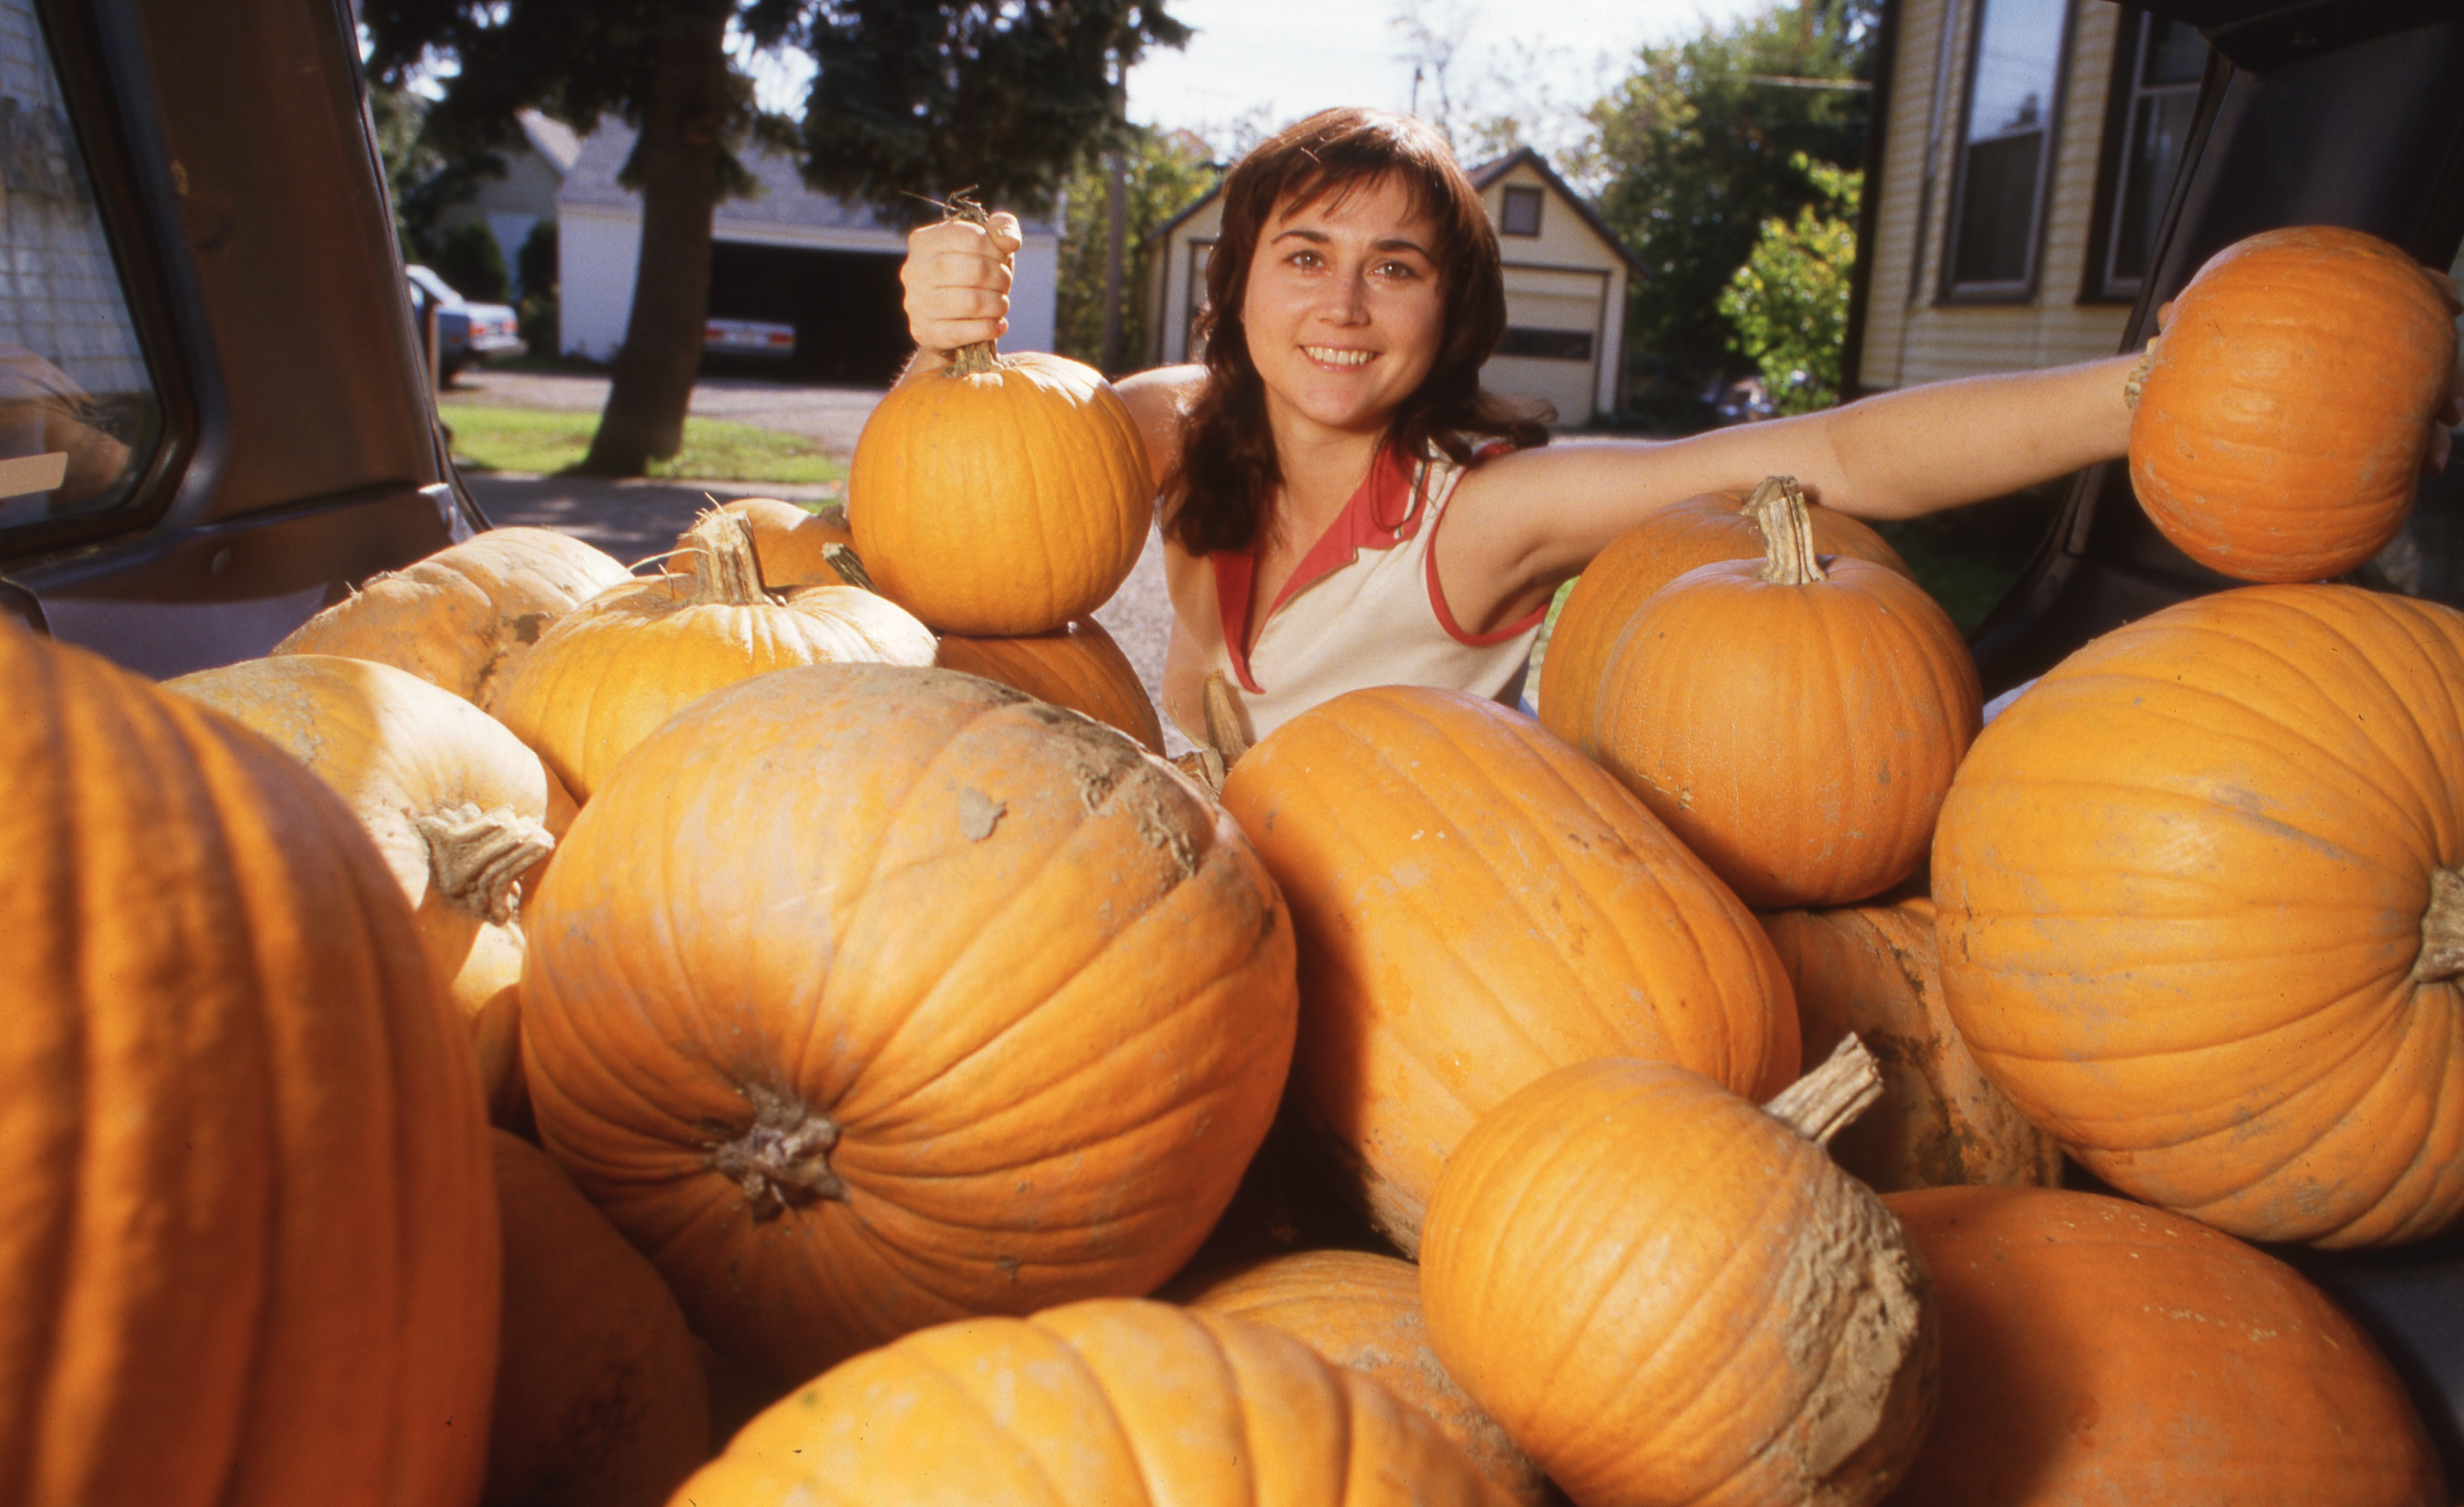 Cyndi Solski With Halloween Pumpkins For Her Carving Party, October 1986 image